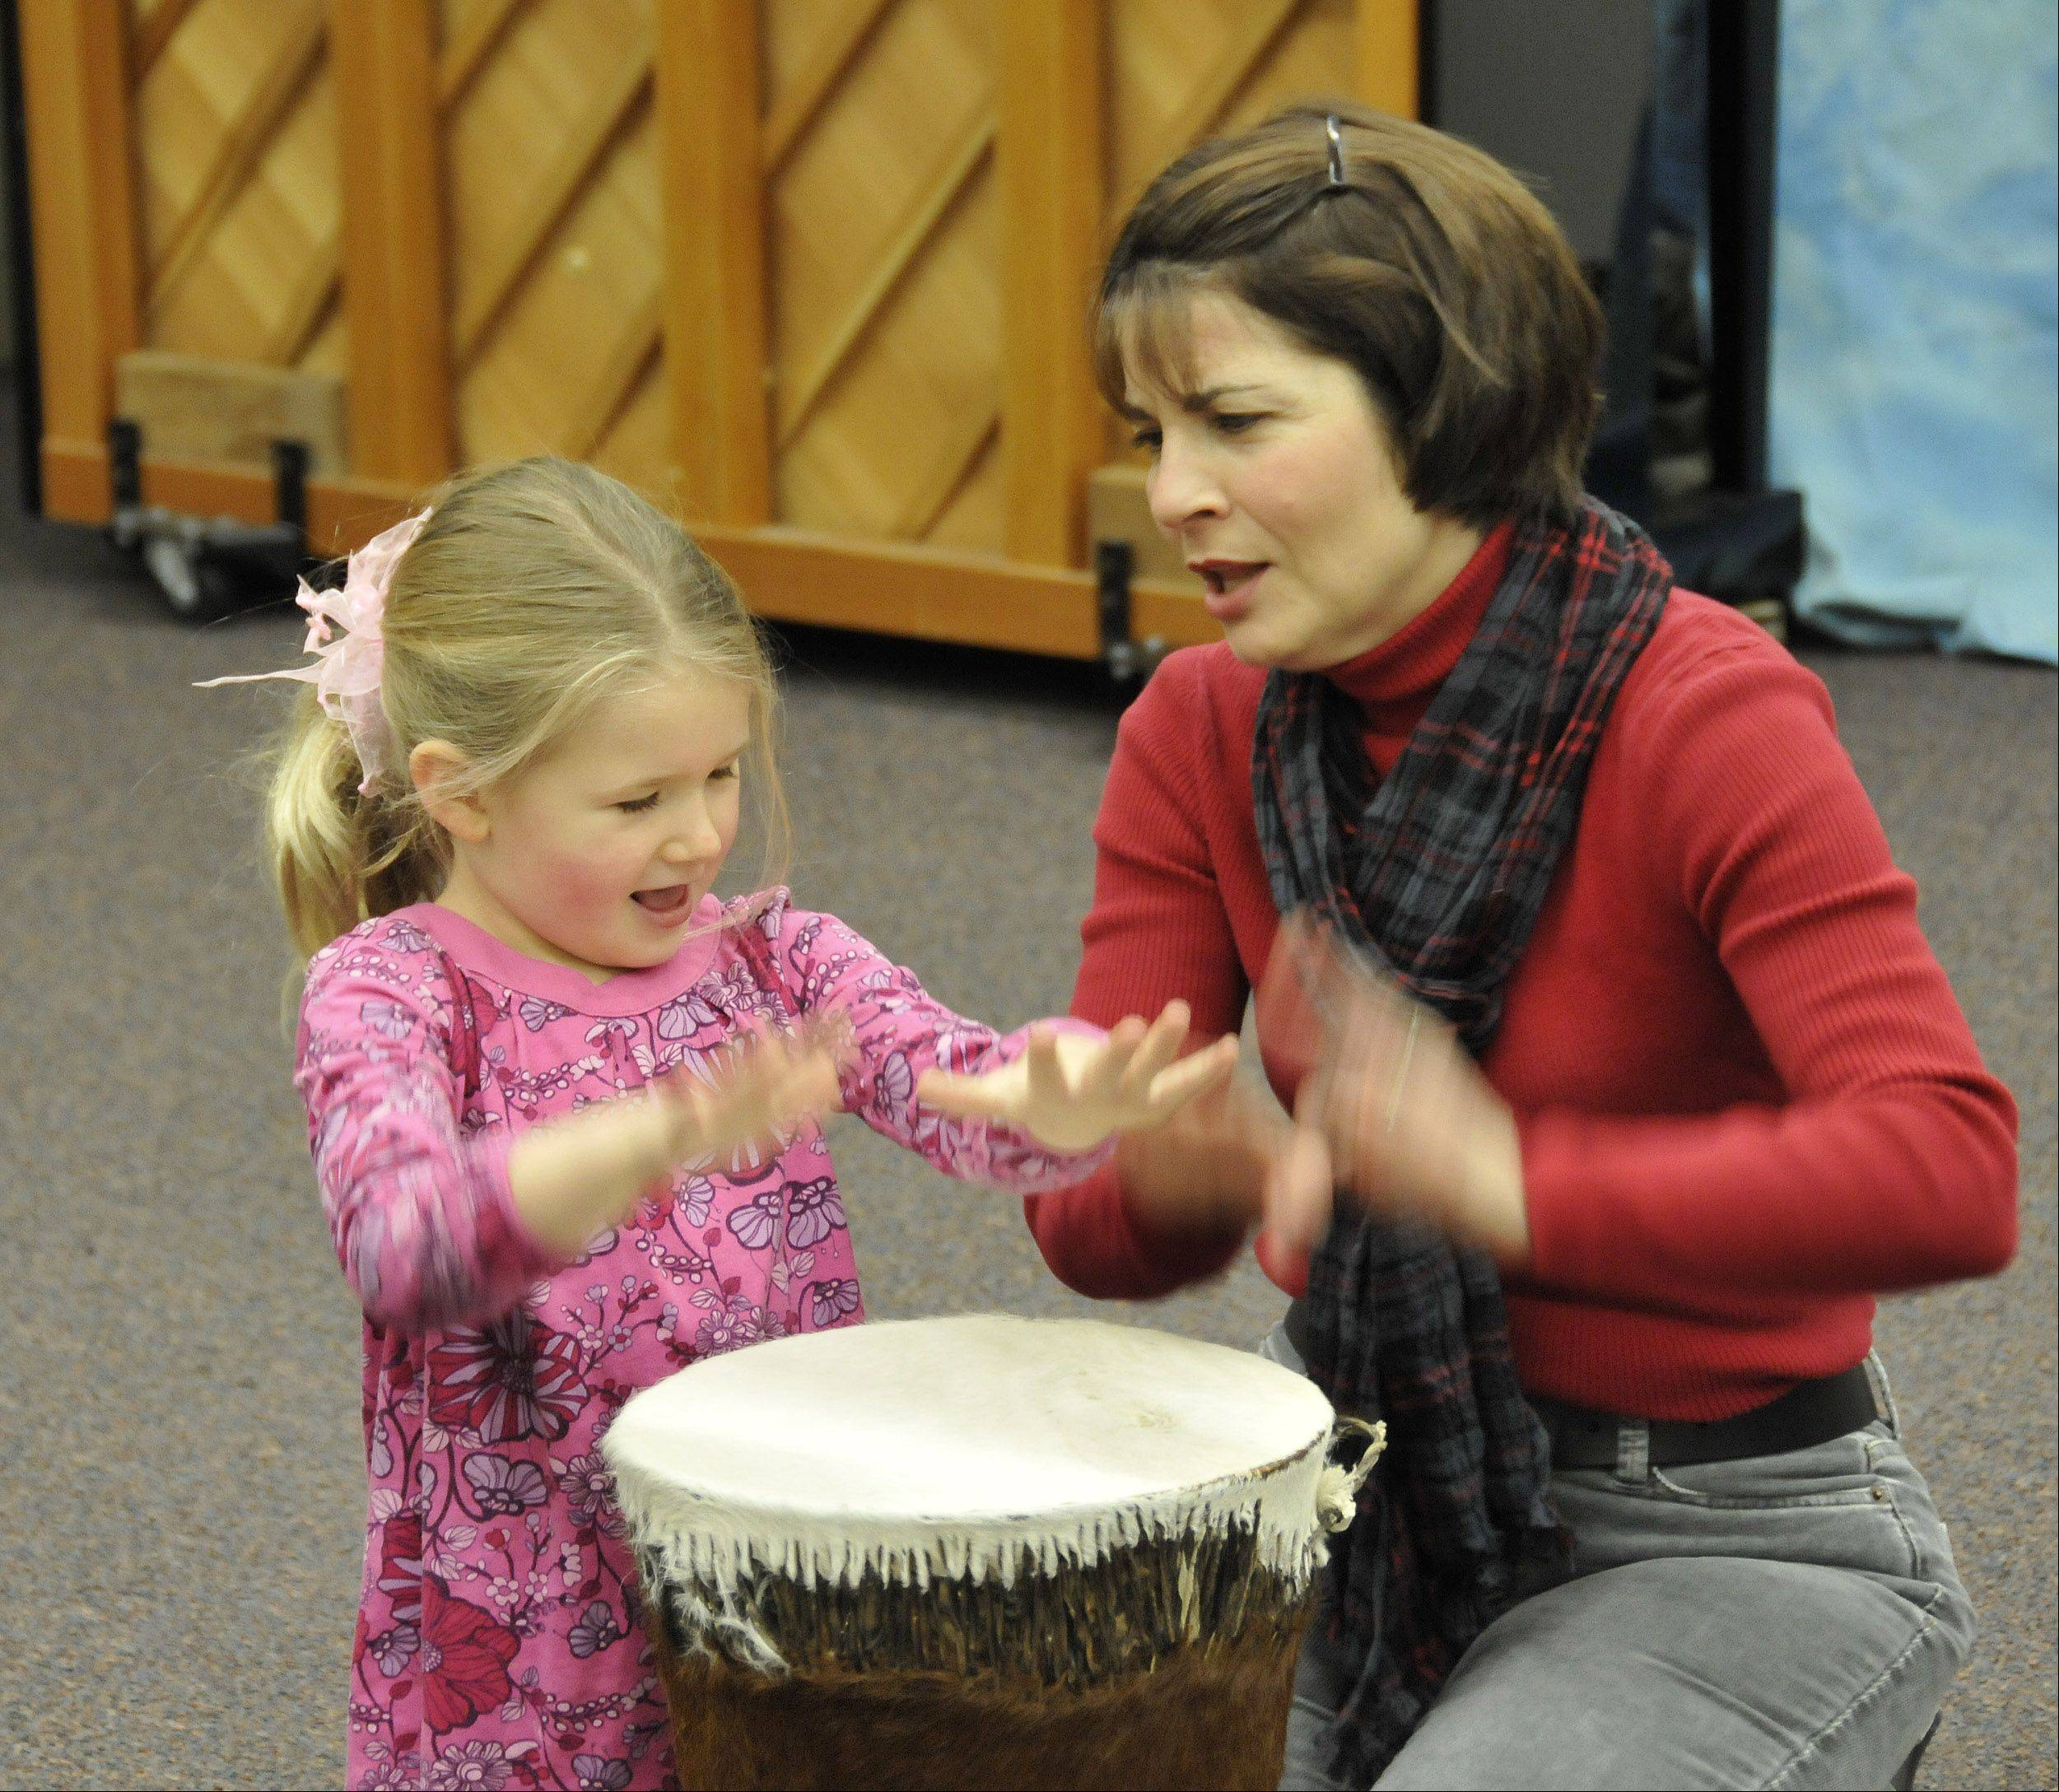 Music teacher Ann Storm plays the bongos with Adelyn Cathy before an early childhood music class starts at Wheaton College's Community School of the Arts. The school puts an emphasis on early exposure to the arts.